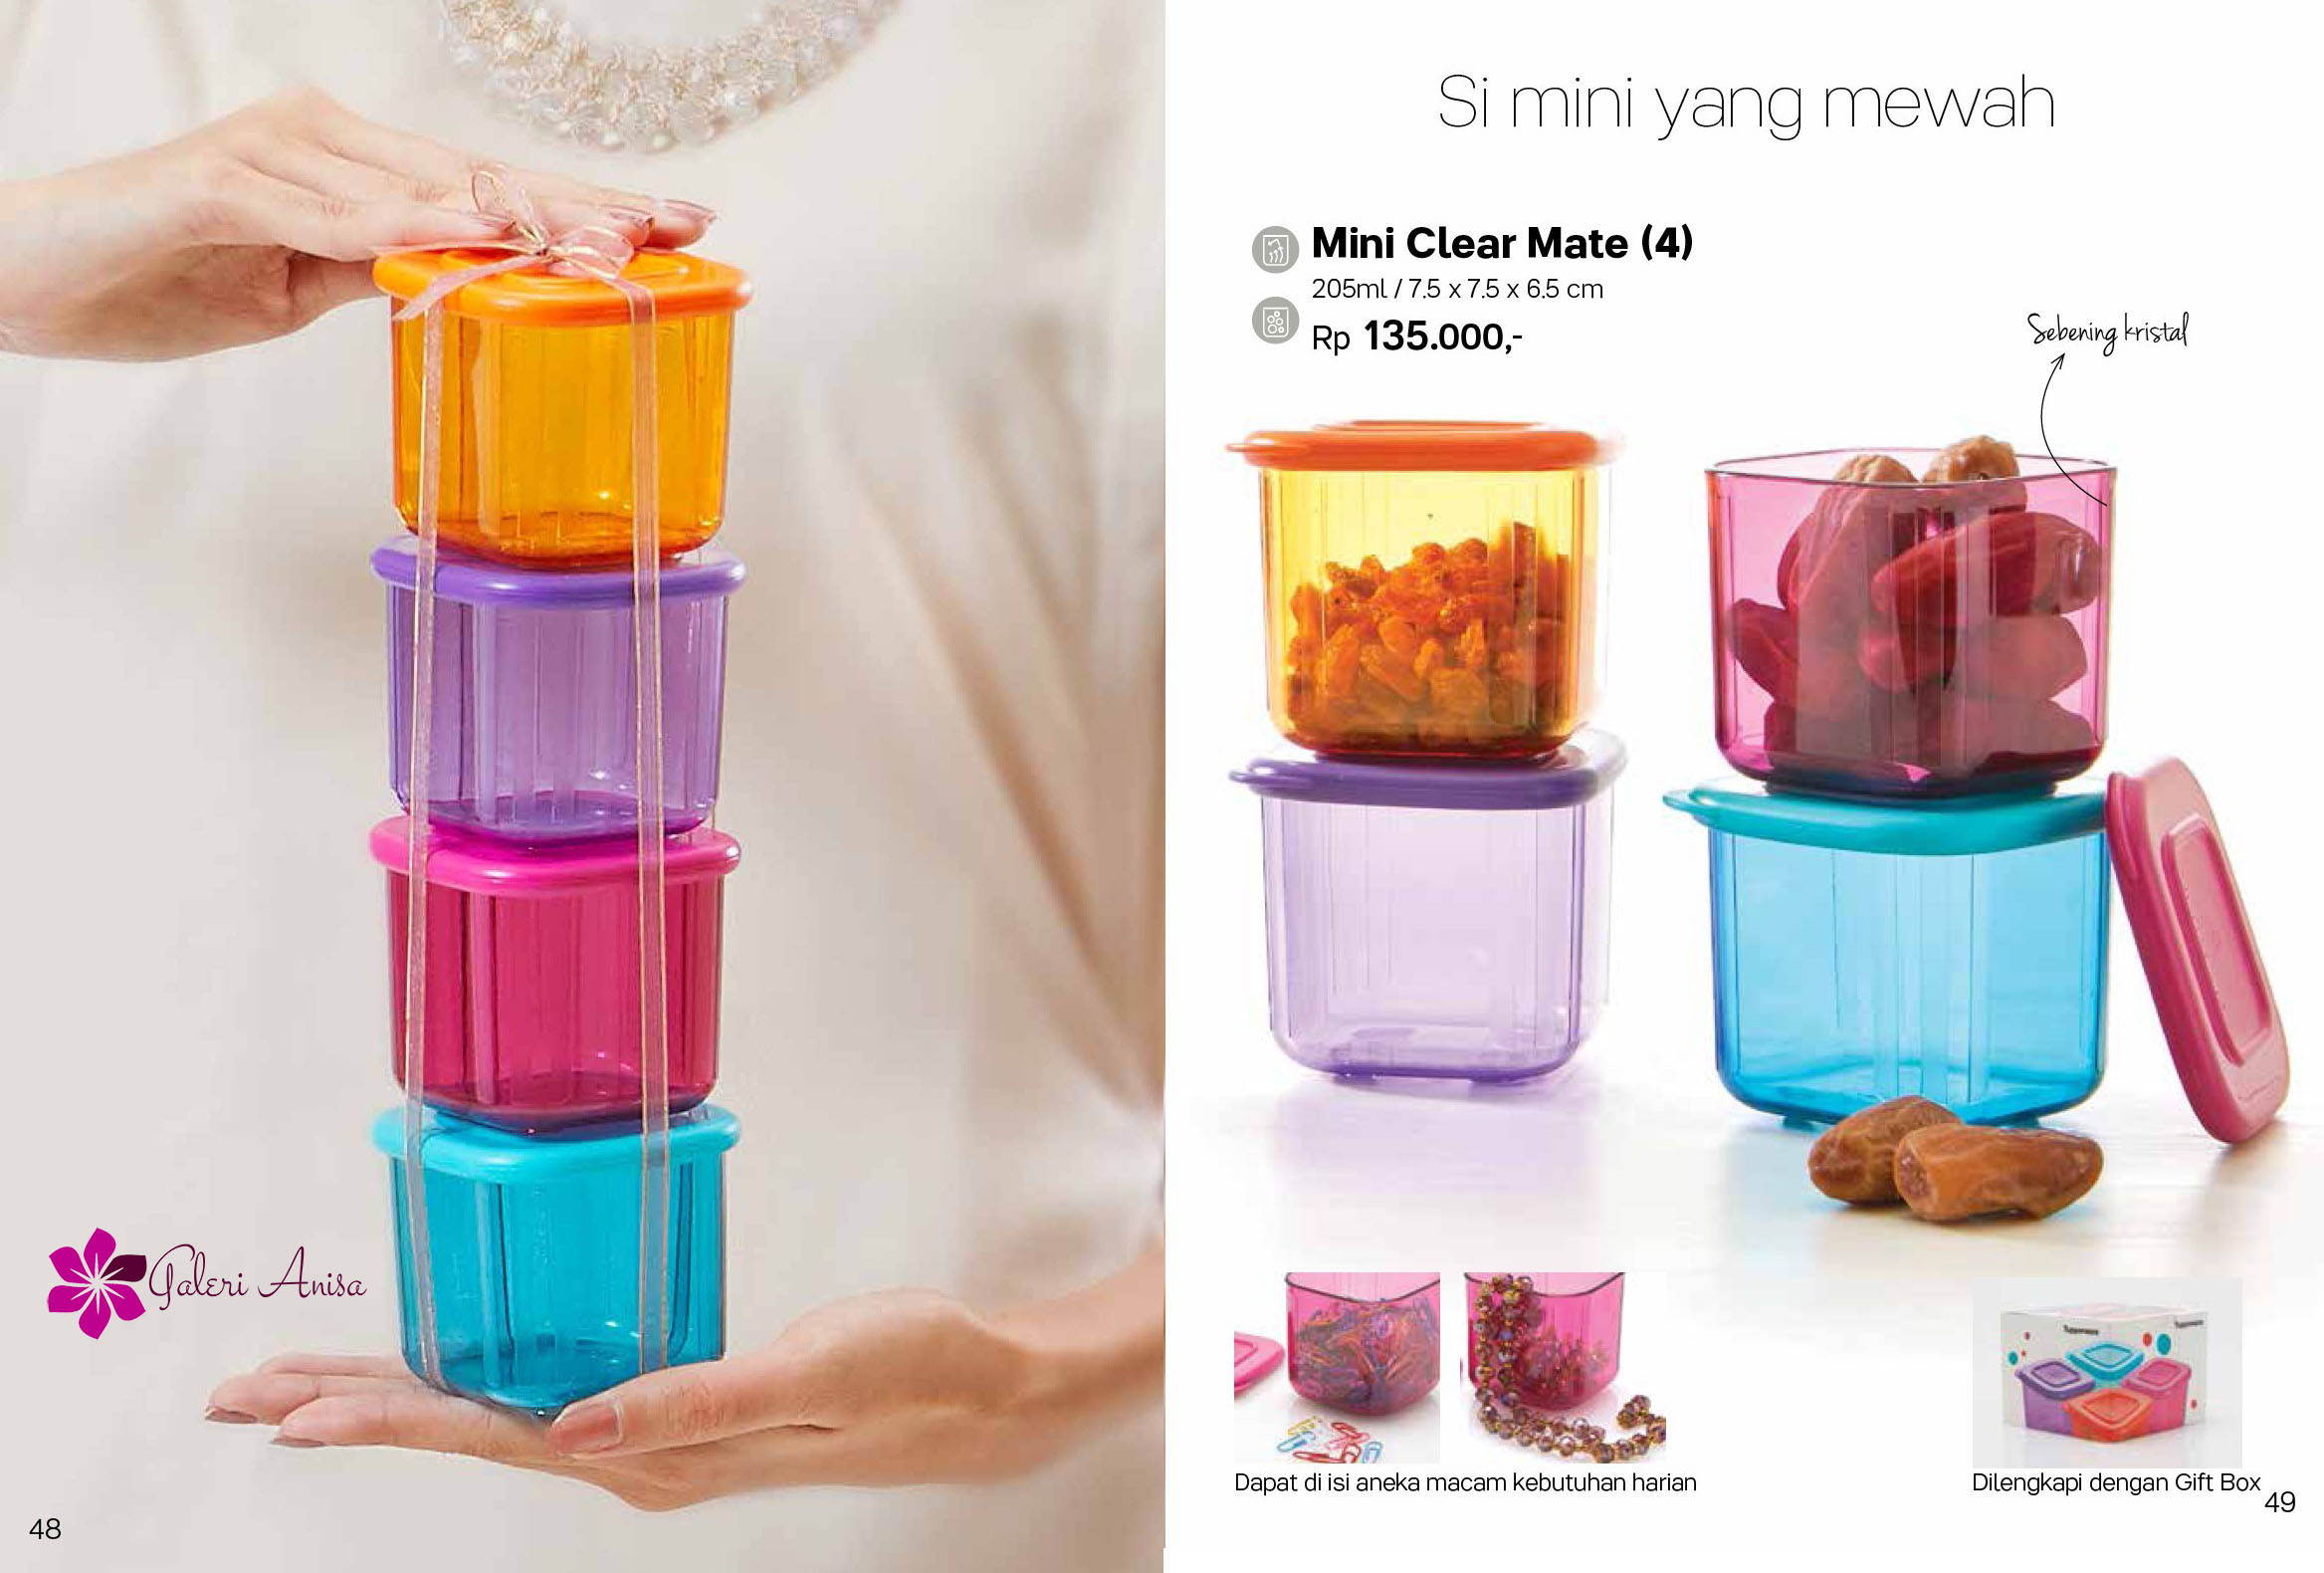 Mini Clear Mate Tupperware Juni 2017